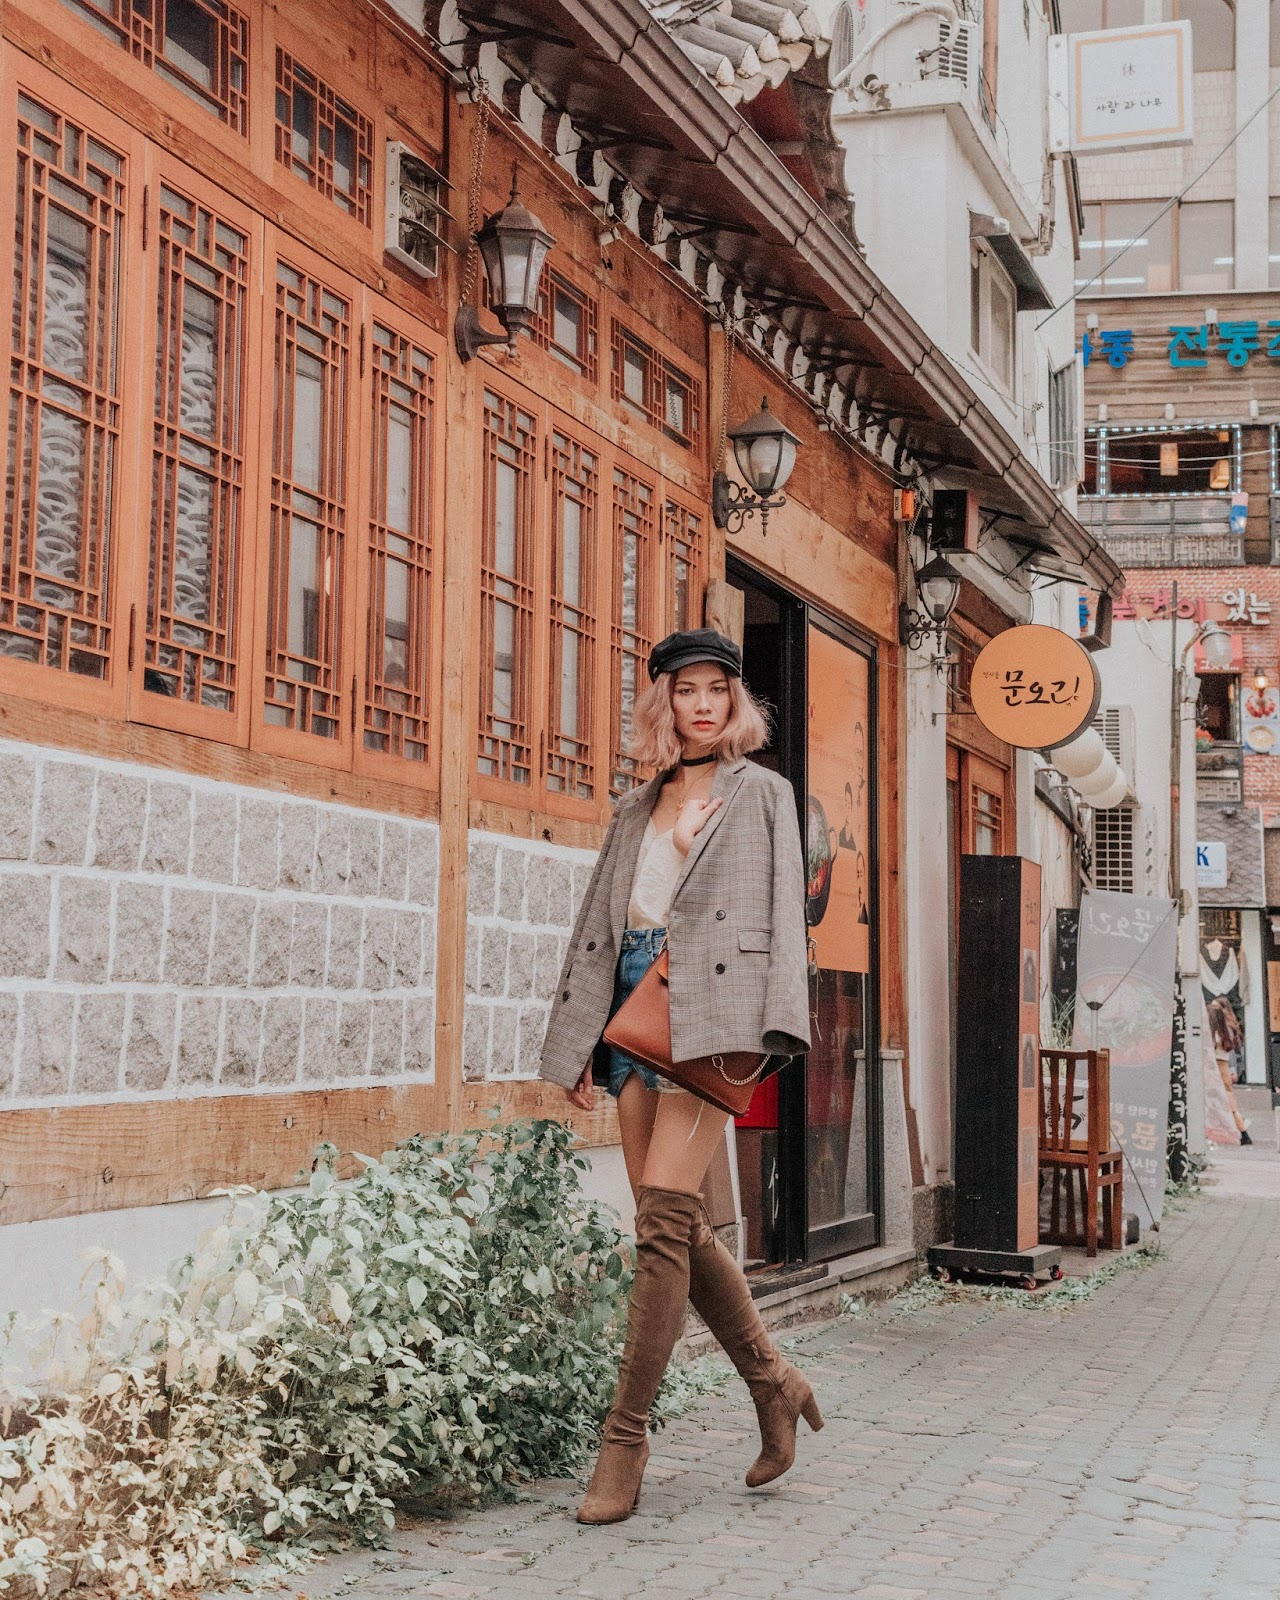 korea travel guide, seoul travel guide, seoul, korea, bukcheon, hanok village, insadong, travel guide, travel, seoul tourism, travel blog, and other stories, chloe girl, chloe faye, mejuri necklace, vintage style, retro style, checked blazer, trend checked, brixton hat, baker boy hat